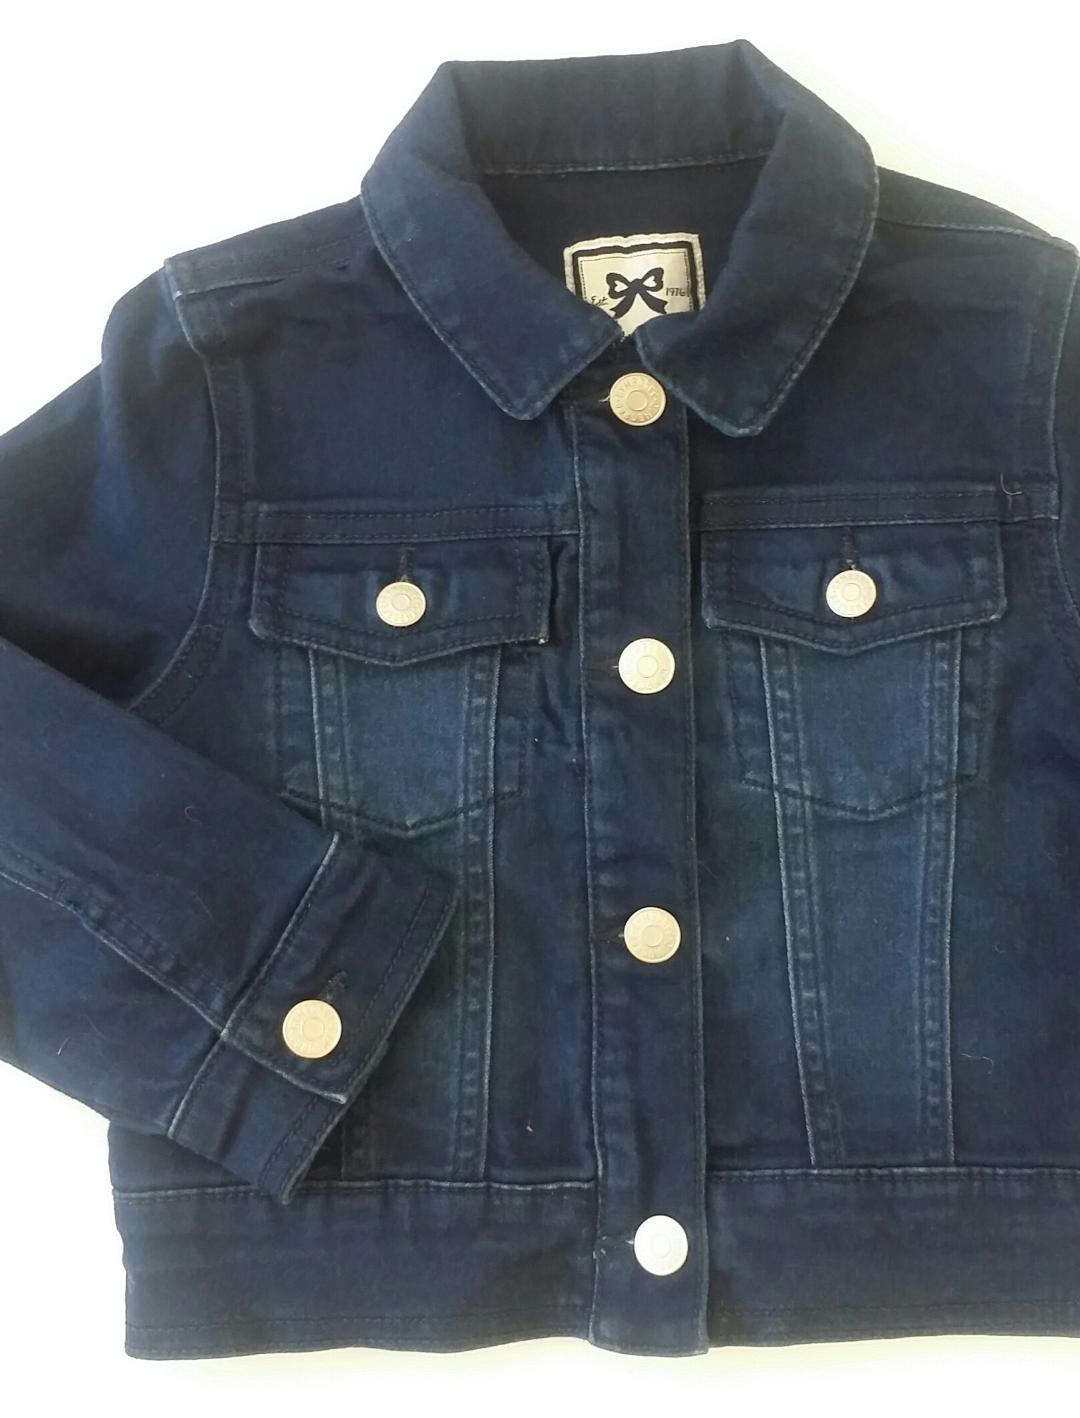 Gymboree-4-YEARS-Denim-Jacket_2139652B.jpg